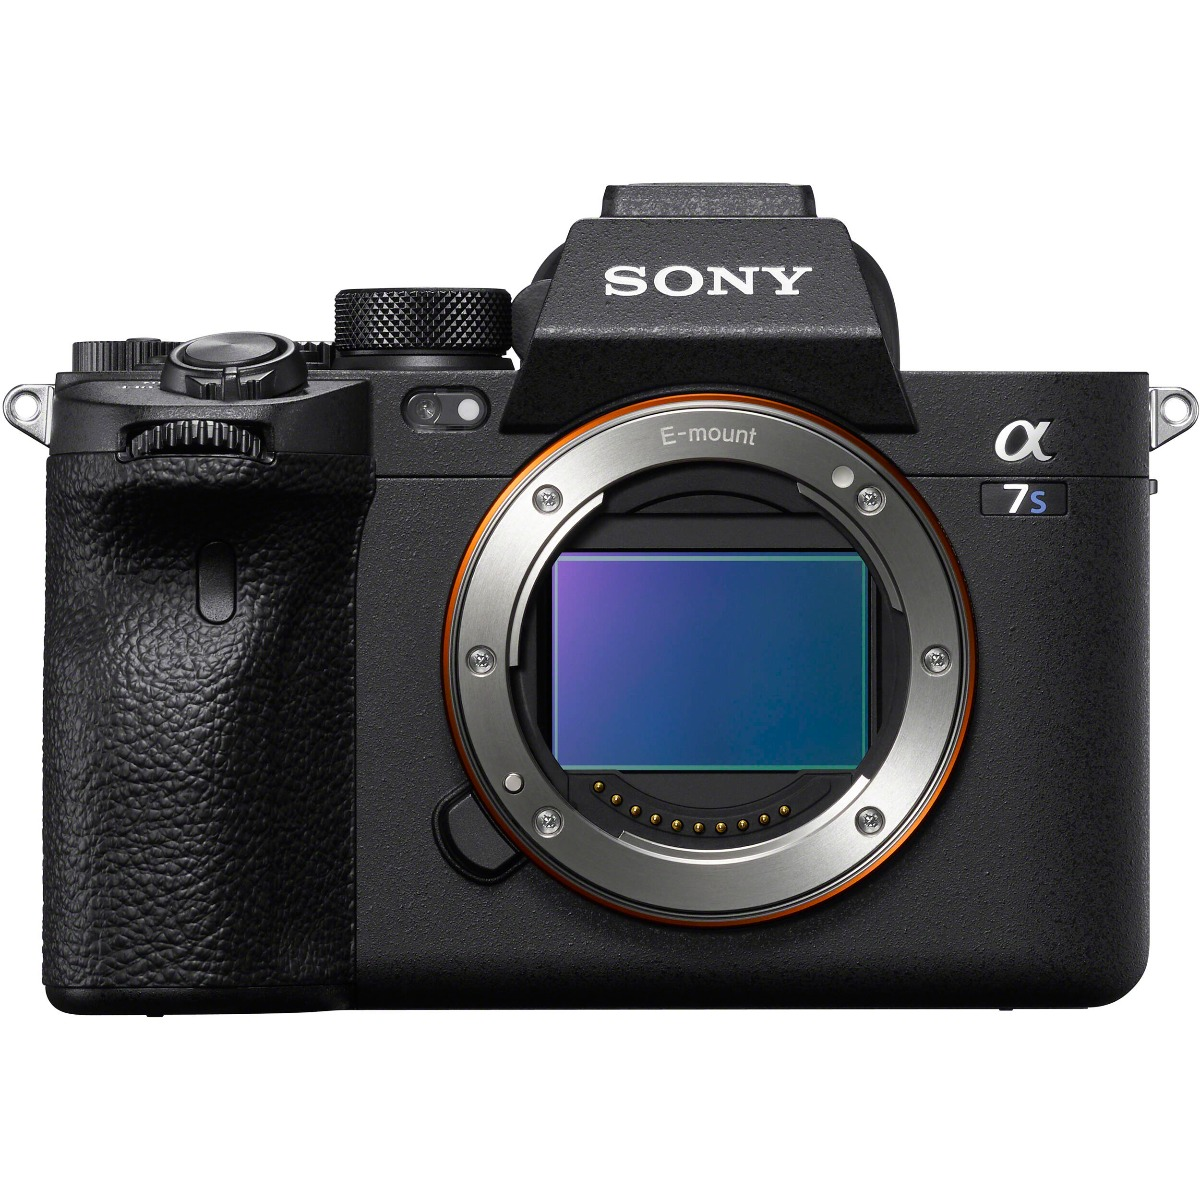 SONY ILCE-7SM3/BQAF1 ALPHA A7S III MIRRORLESS CAMERA (BODY ONLY)